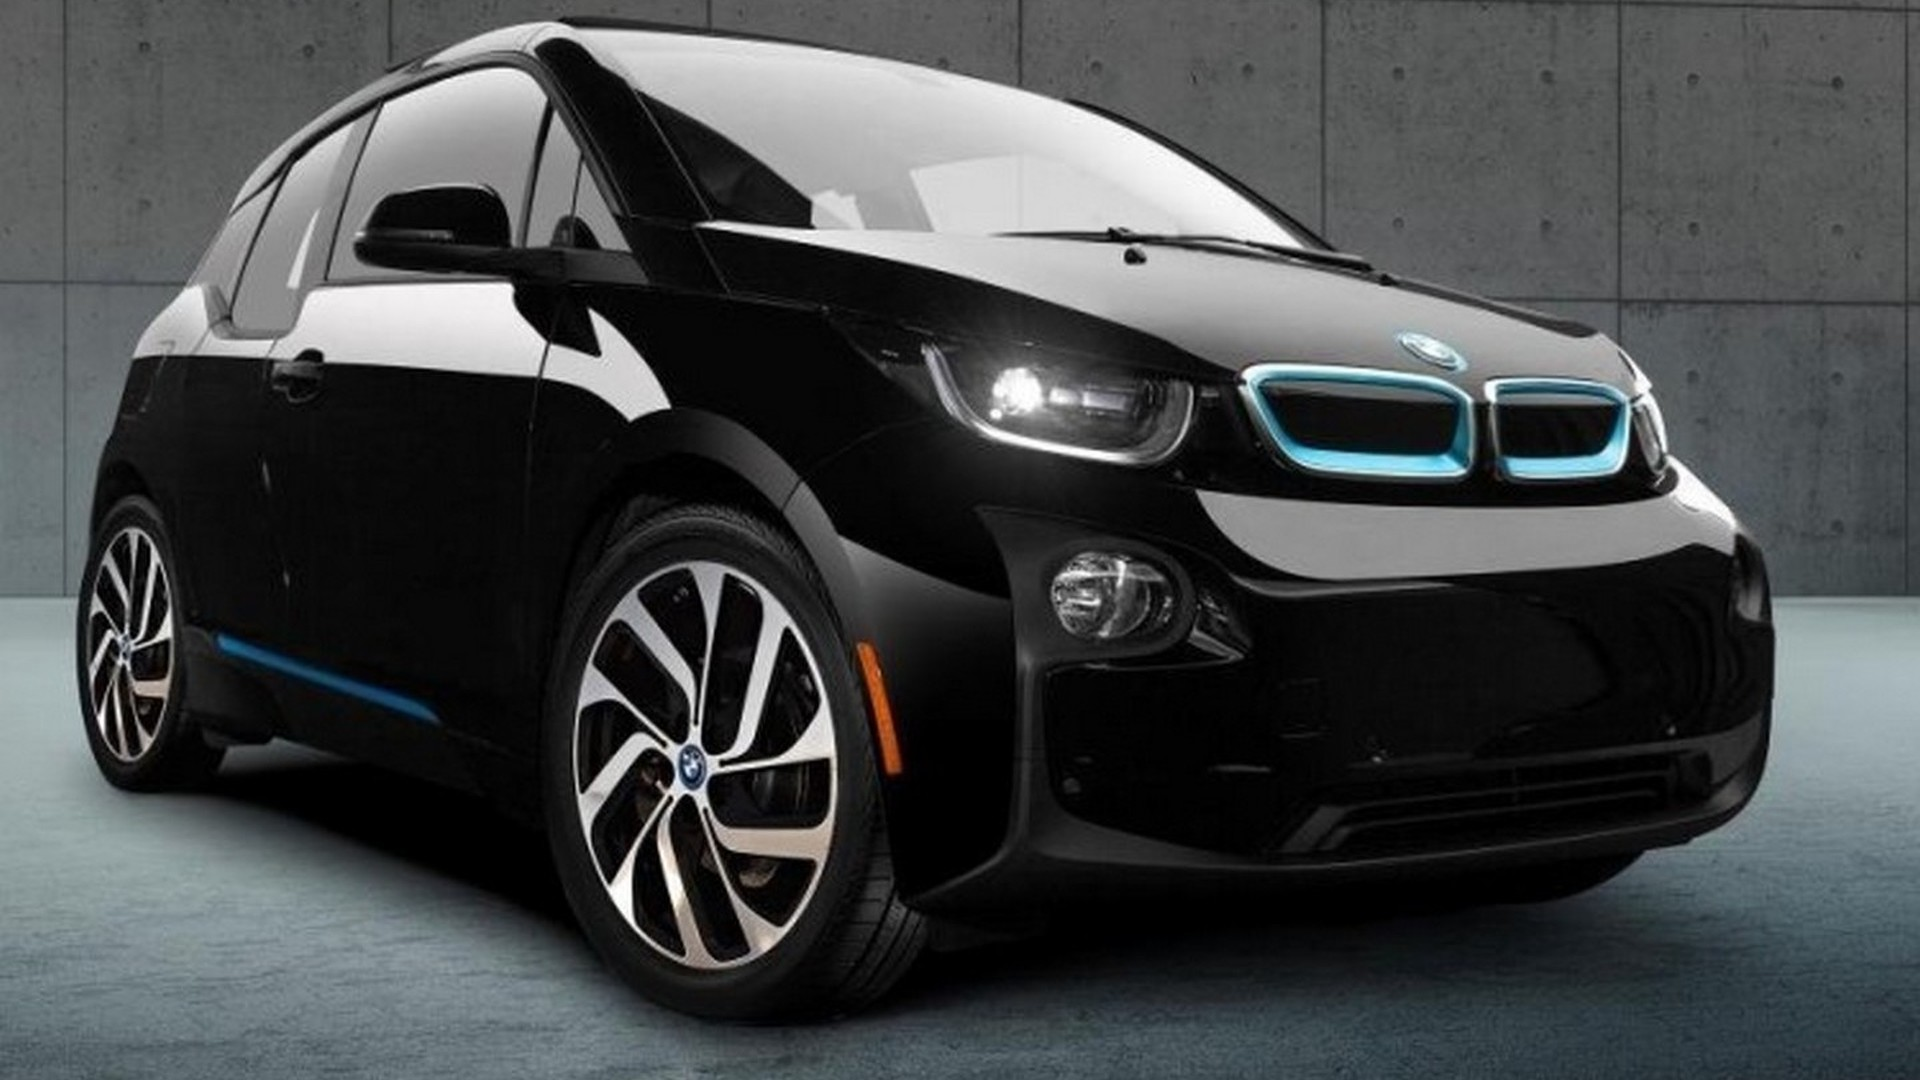 Rumored BMW i3 update to boost range to over 124 miles